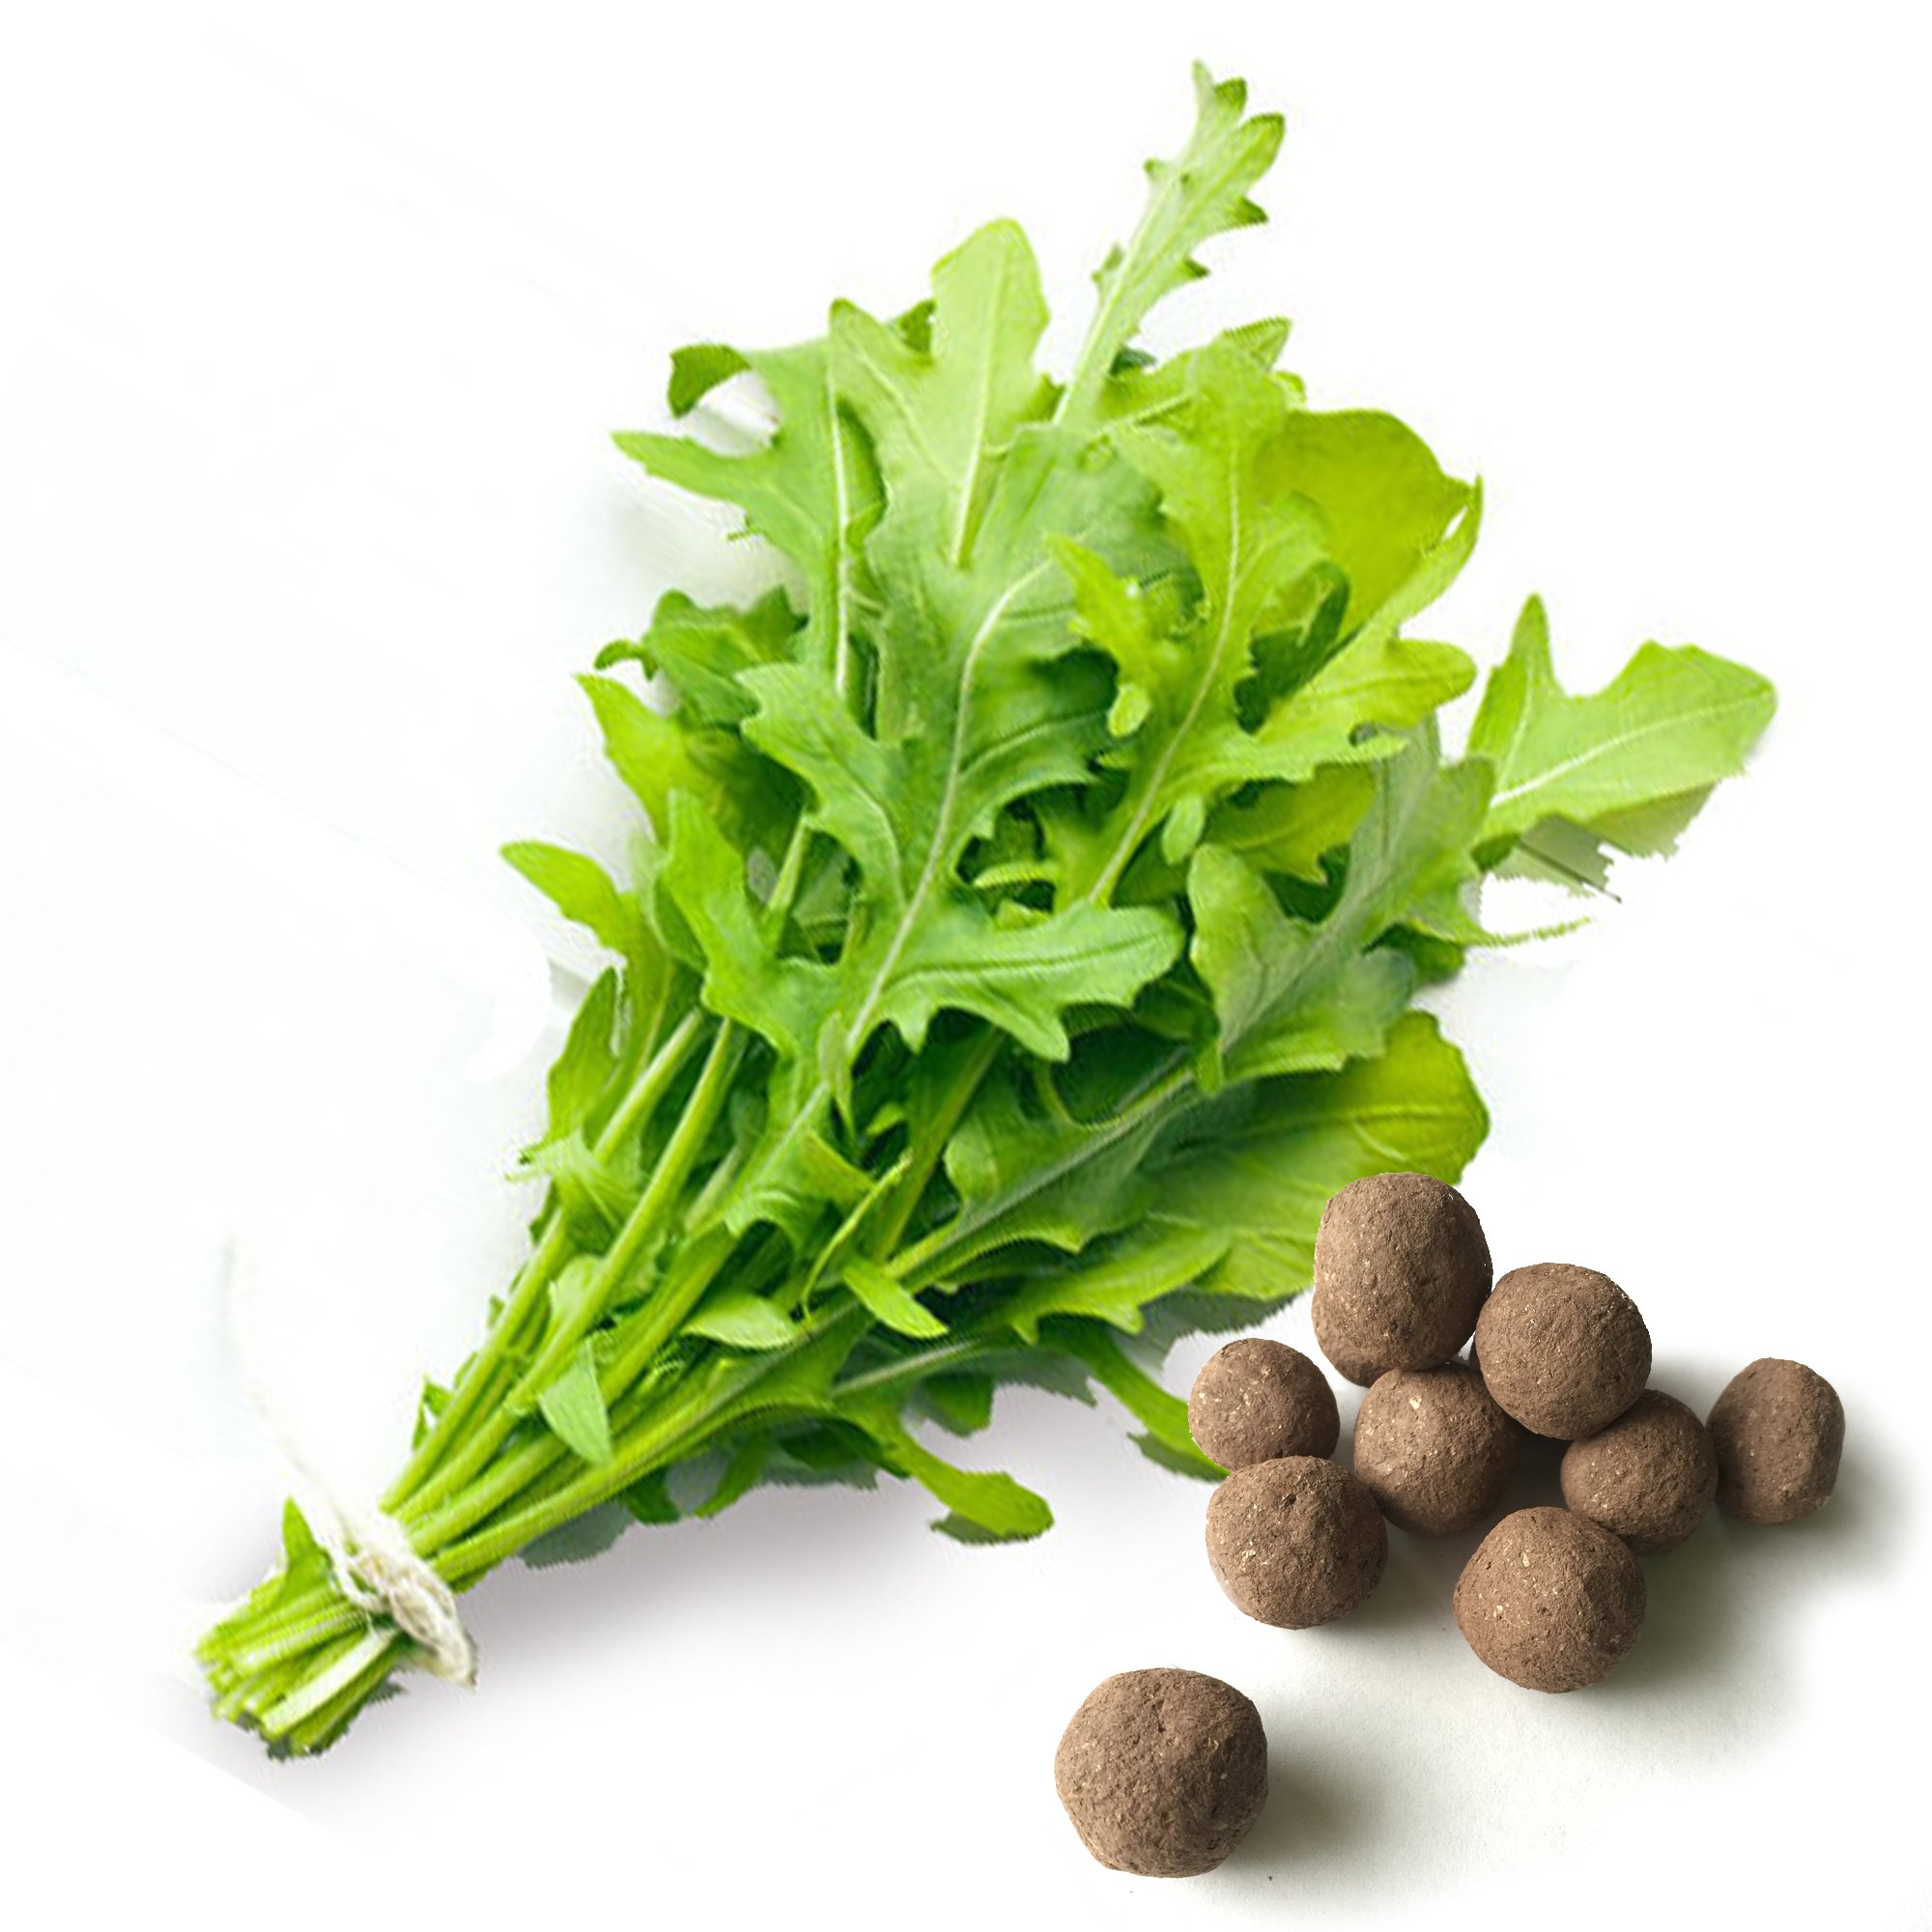 20 Arugula Seed Balls (Salas Rocket)- Herb & Vegetable Seed Bombs to Make Gardening Fun and Simple! by Seed-Balls.com